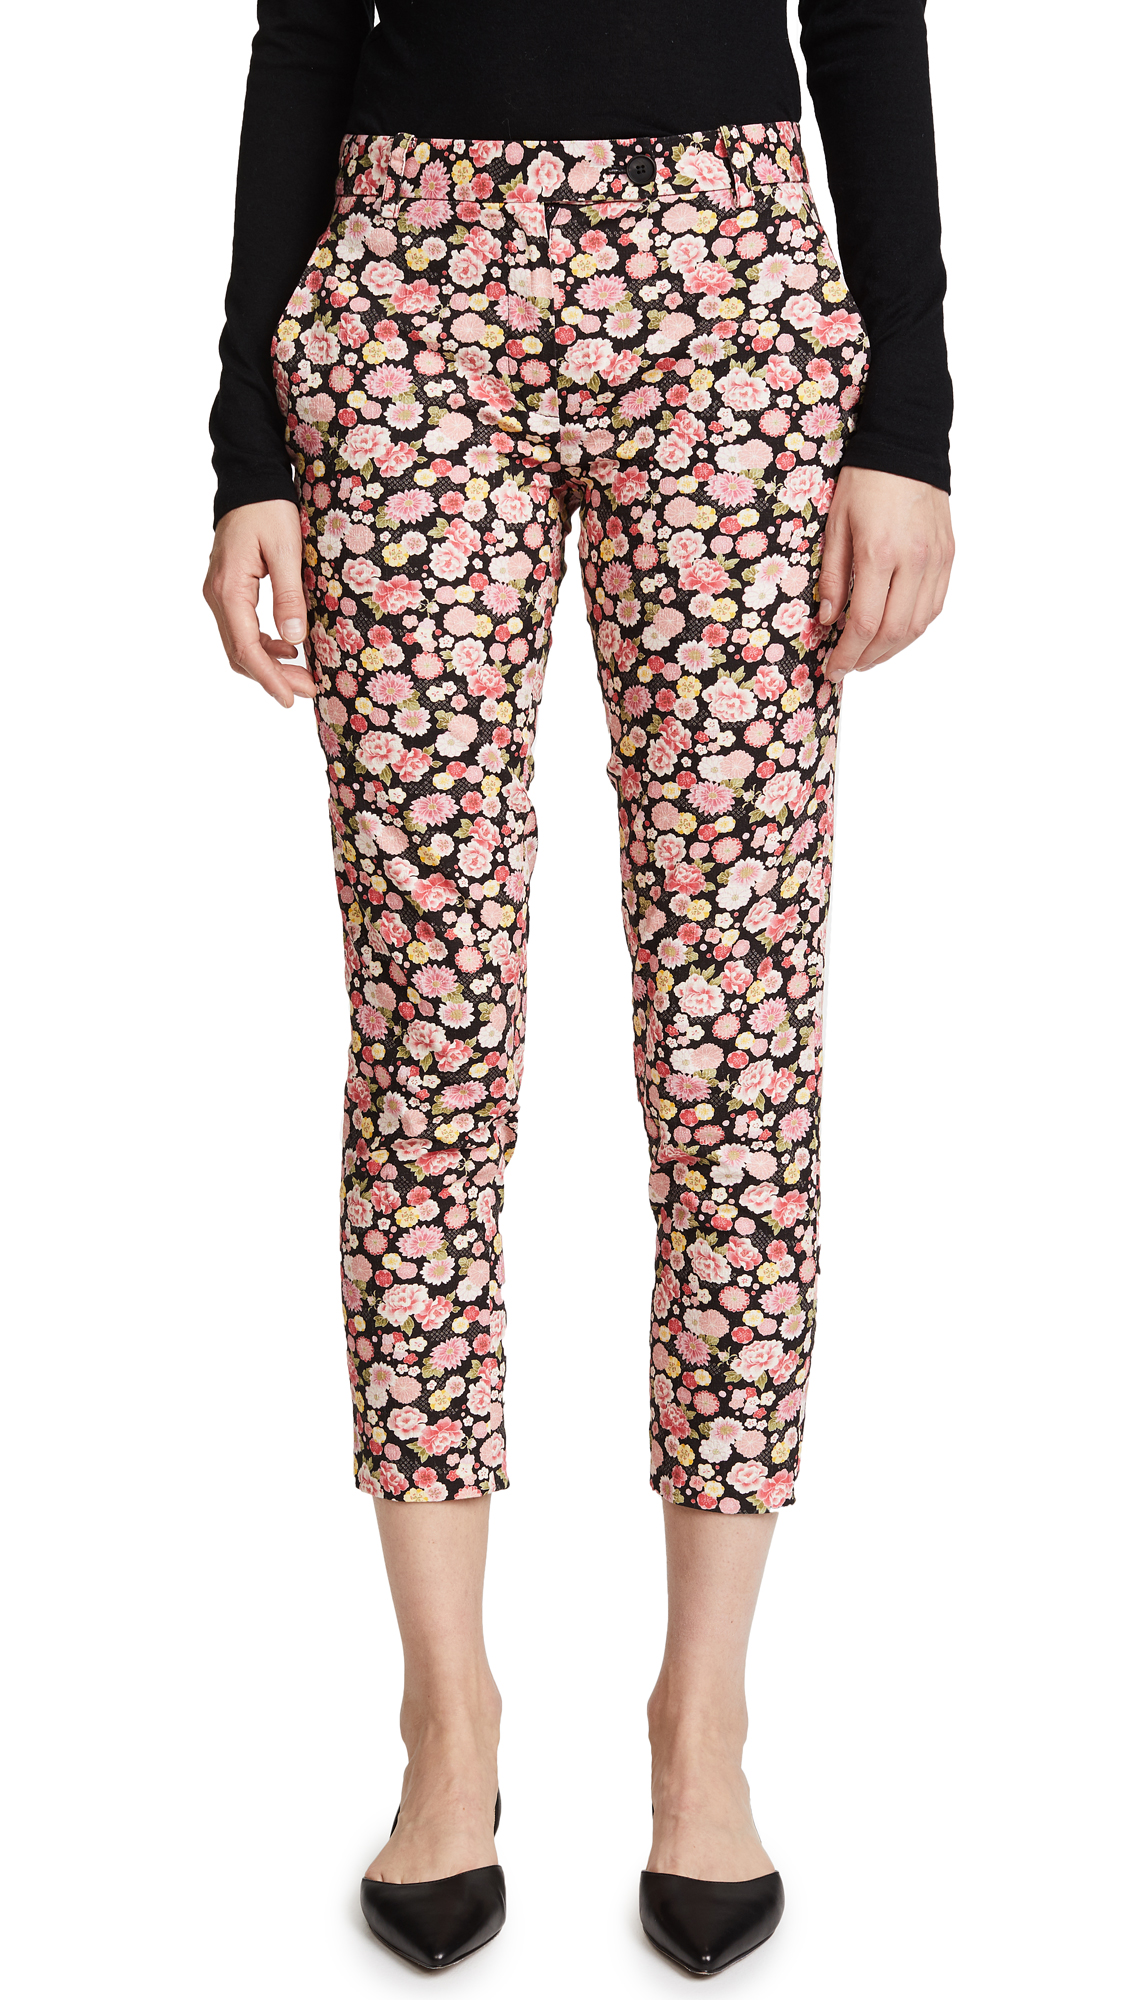 6397 Cropped Trousers In Floral